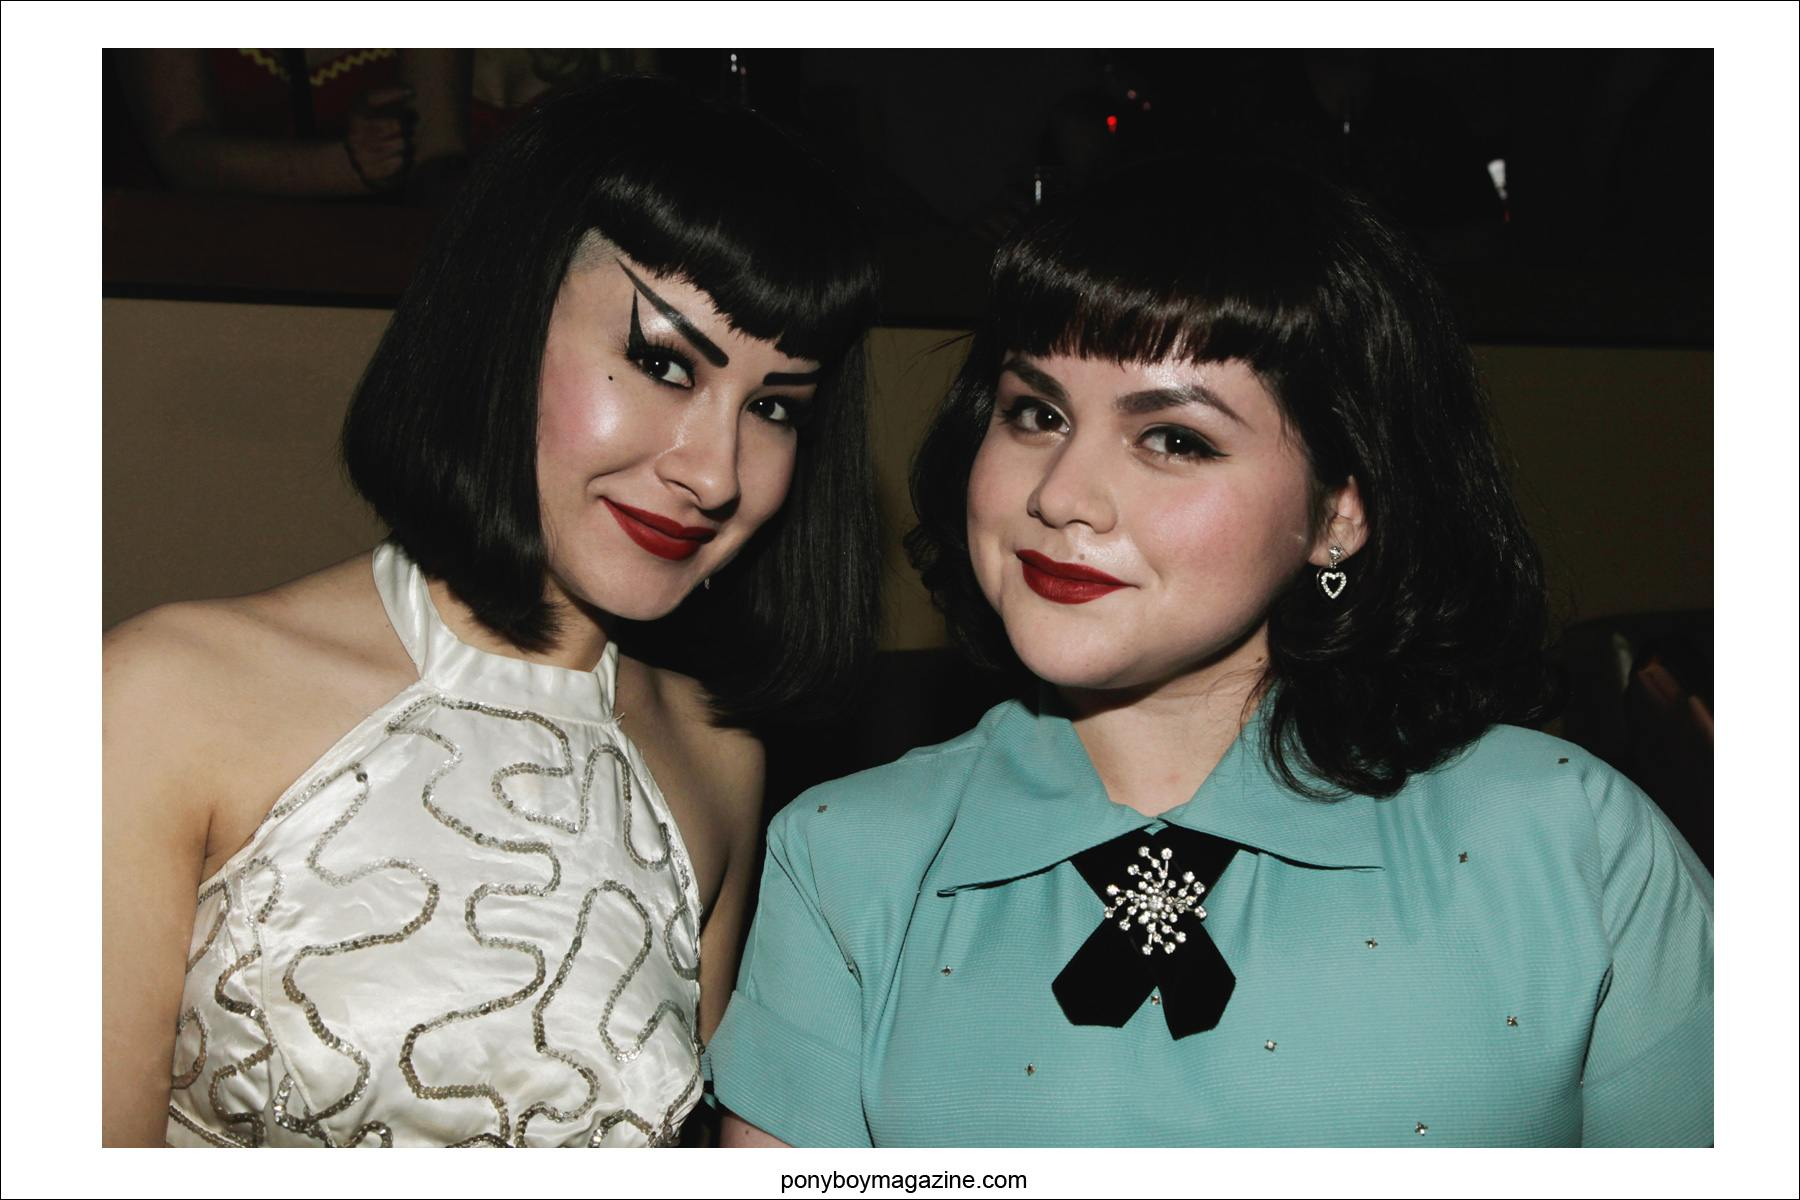 Rockabilly girls photographed in 50's vintage fashions by Alexander Thompson for Ponyboy Magazine at Tom Ingram's Viva Las Vegas 17.